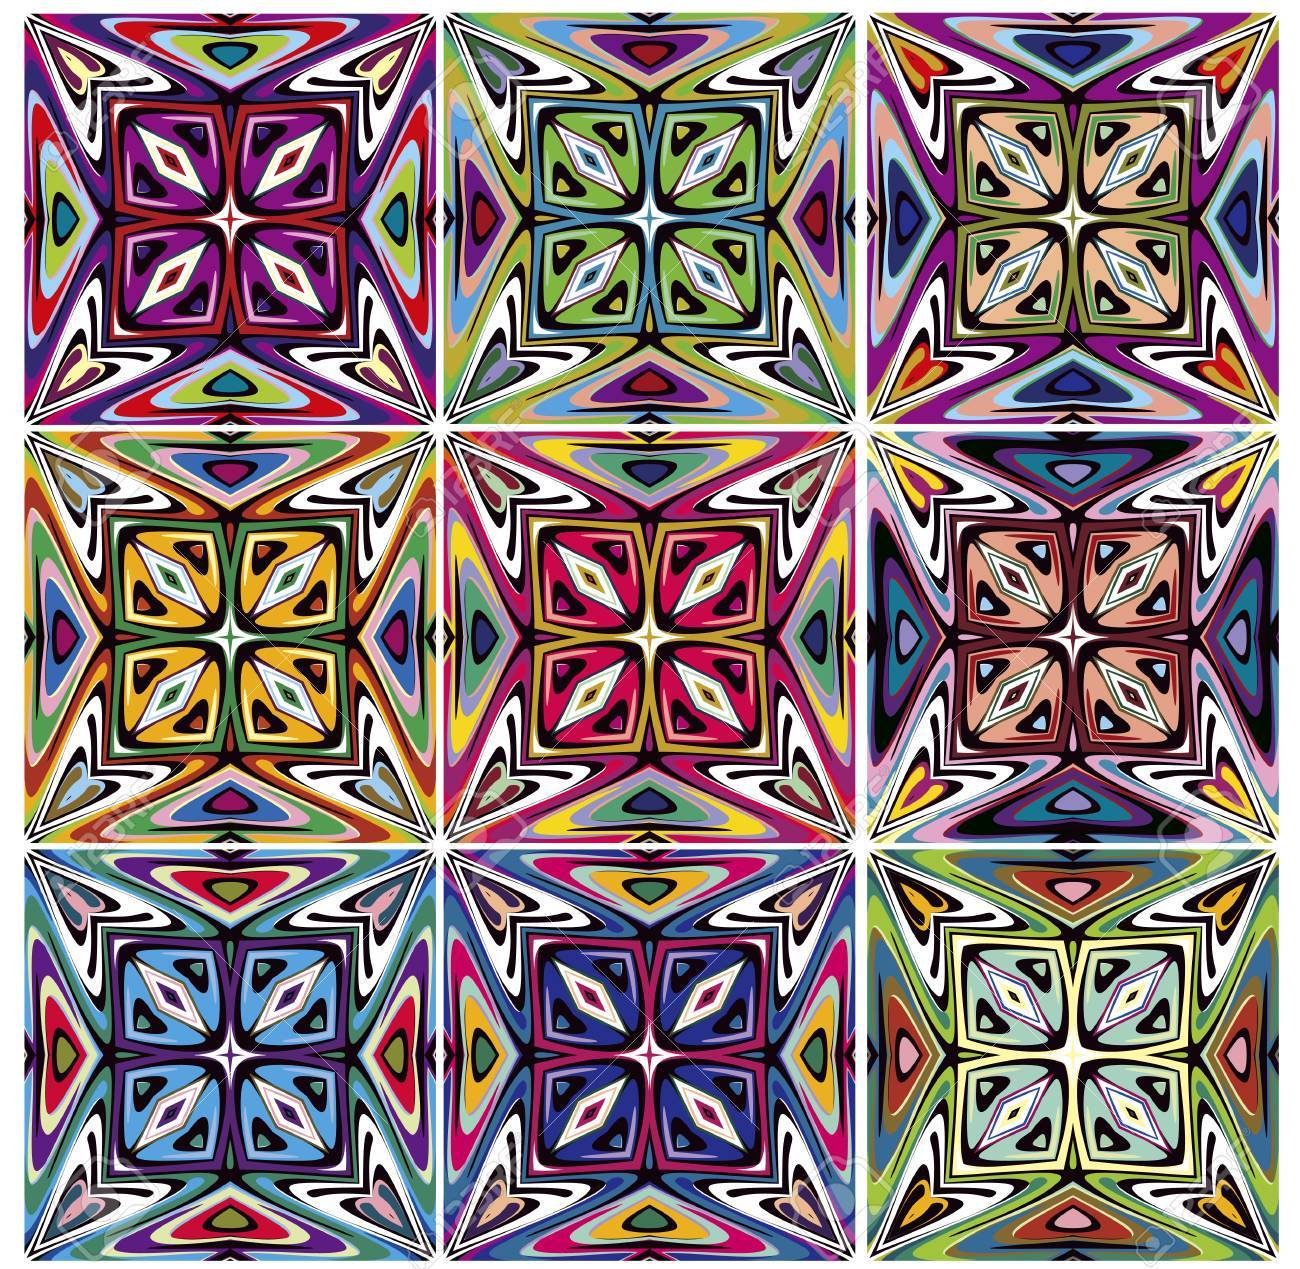 Set Of Seamless Native American Patterns With Spiritual Symbols In